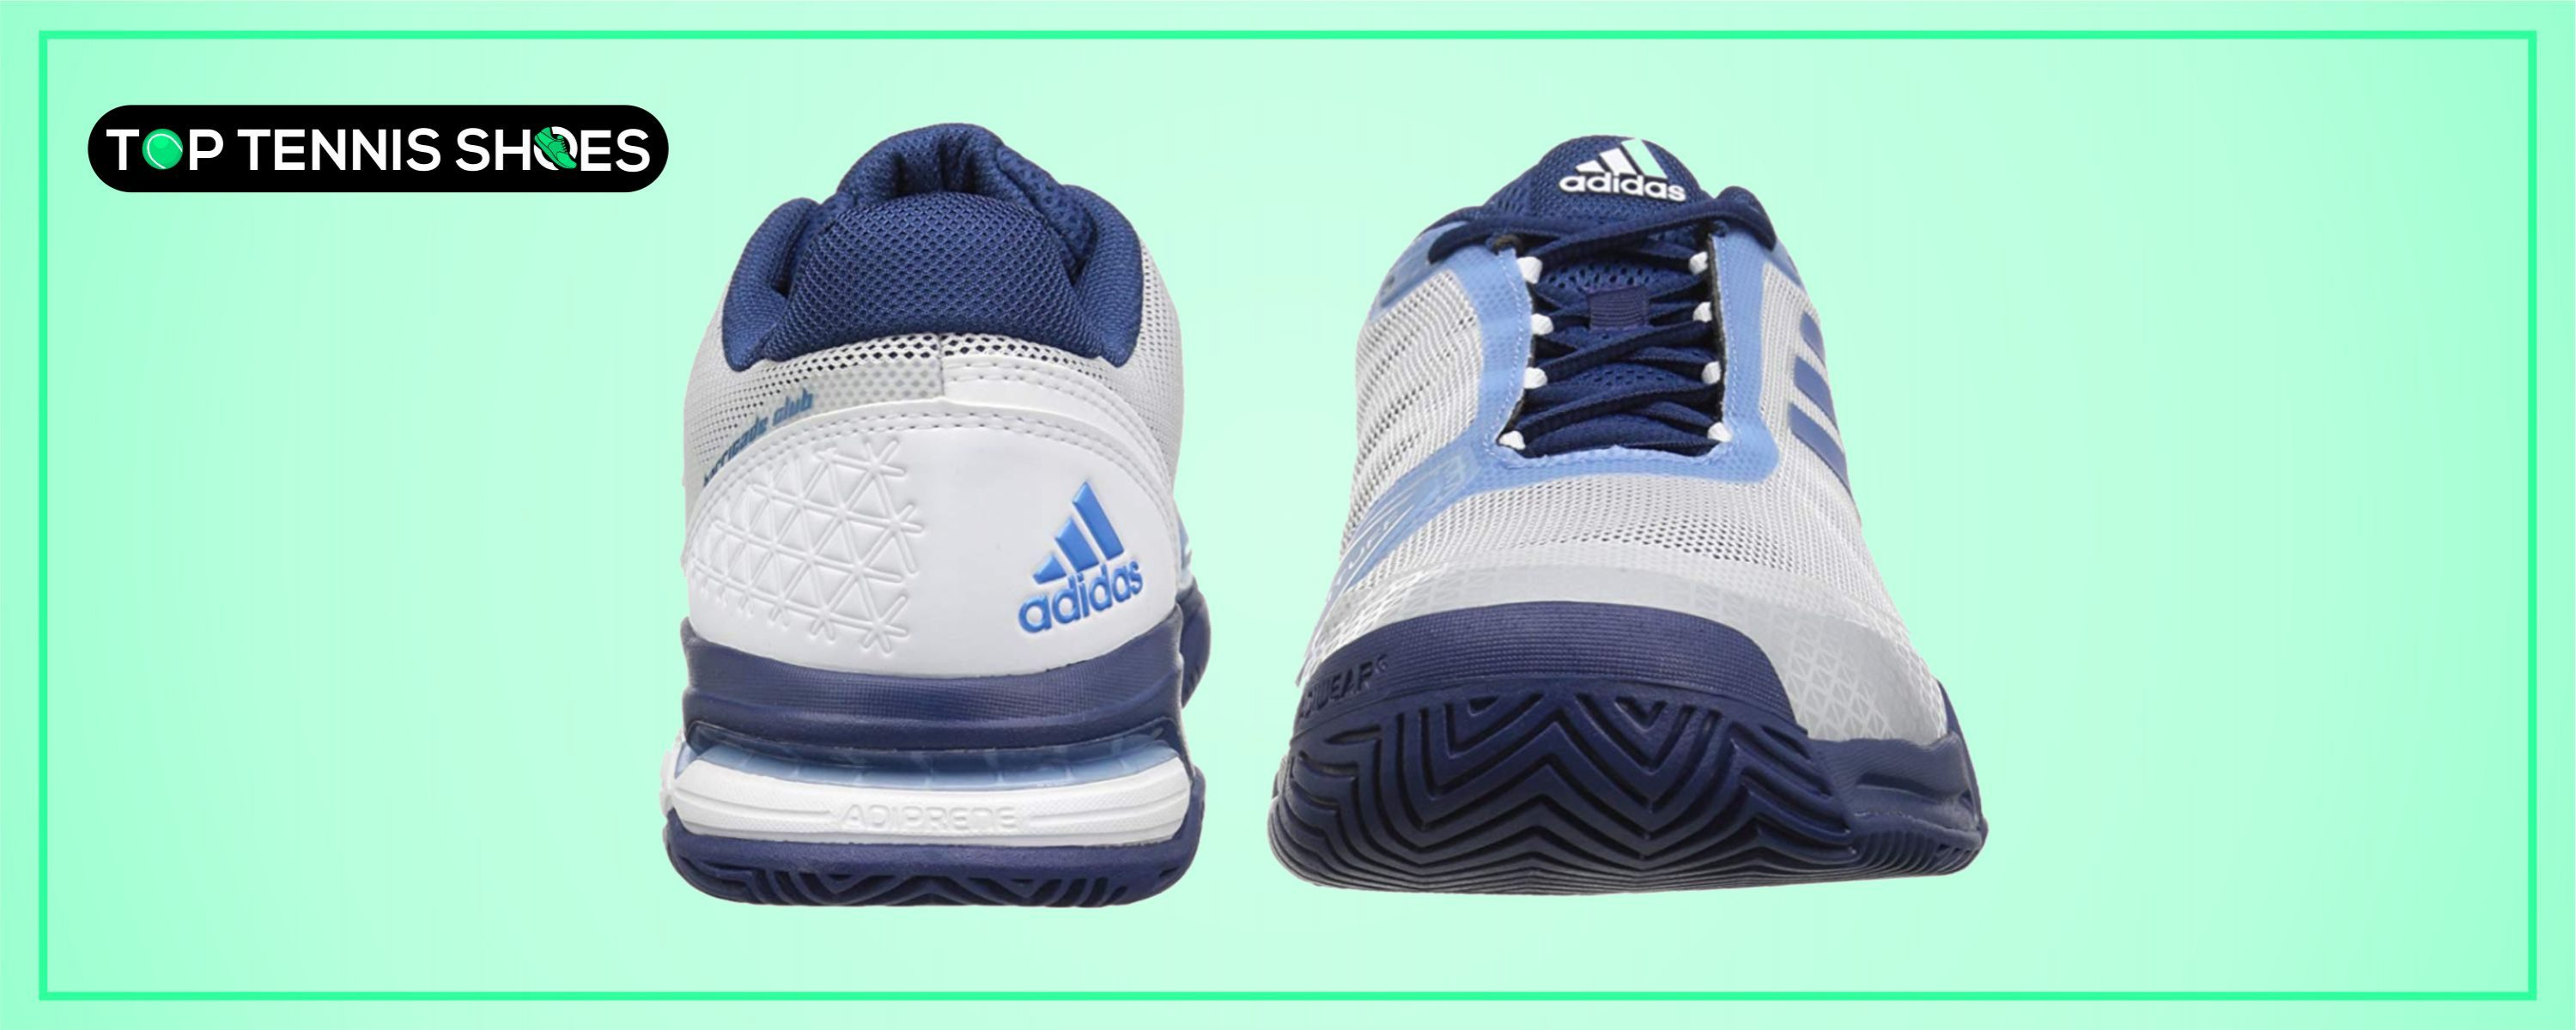 tennis shoes for heel pain 2019 reviews